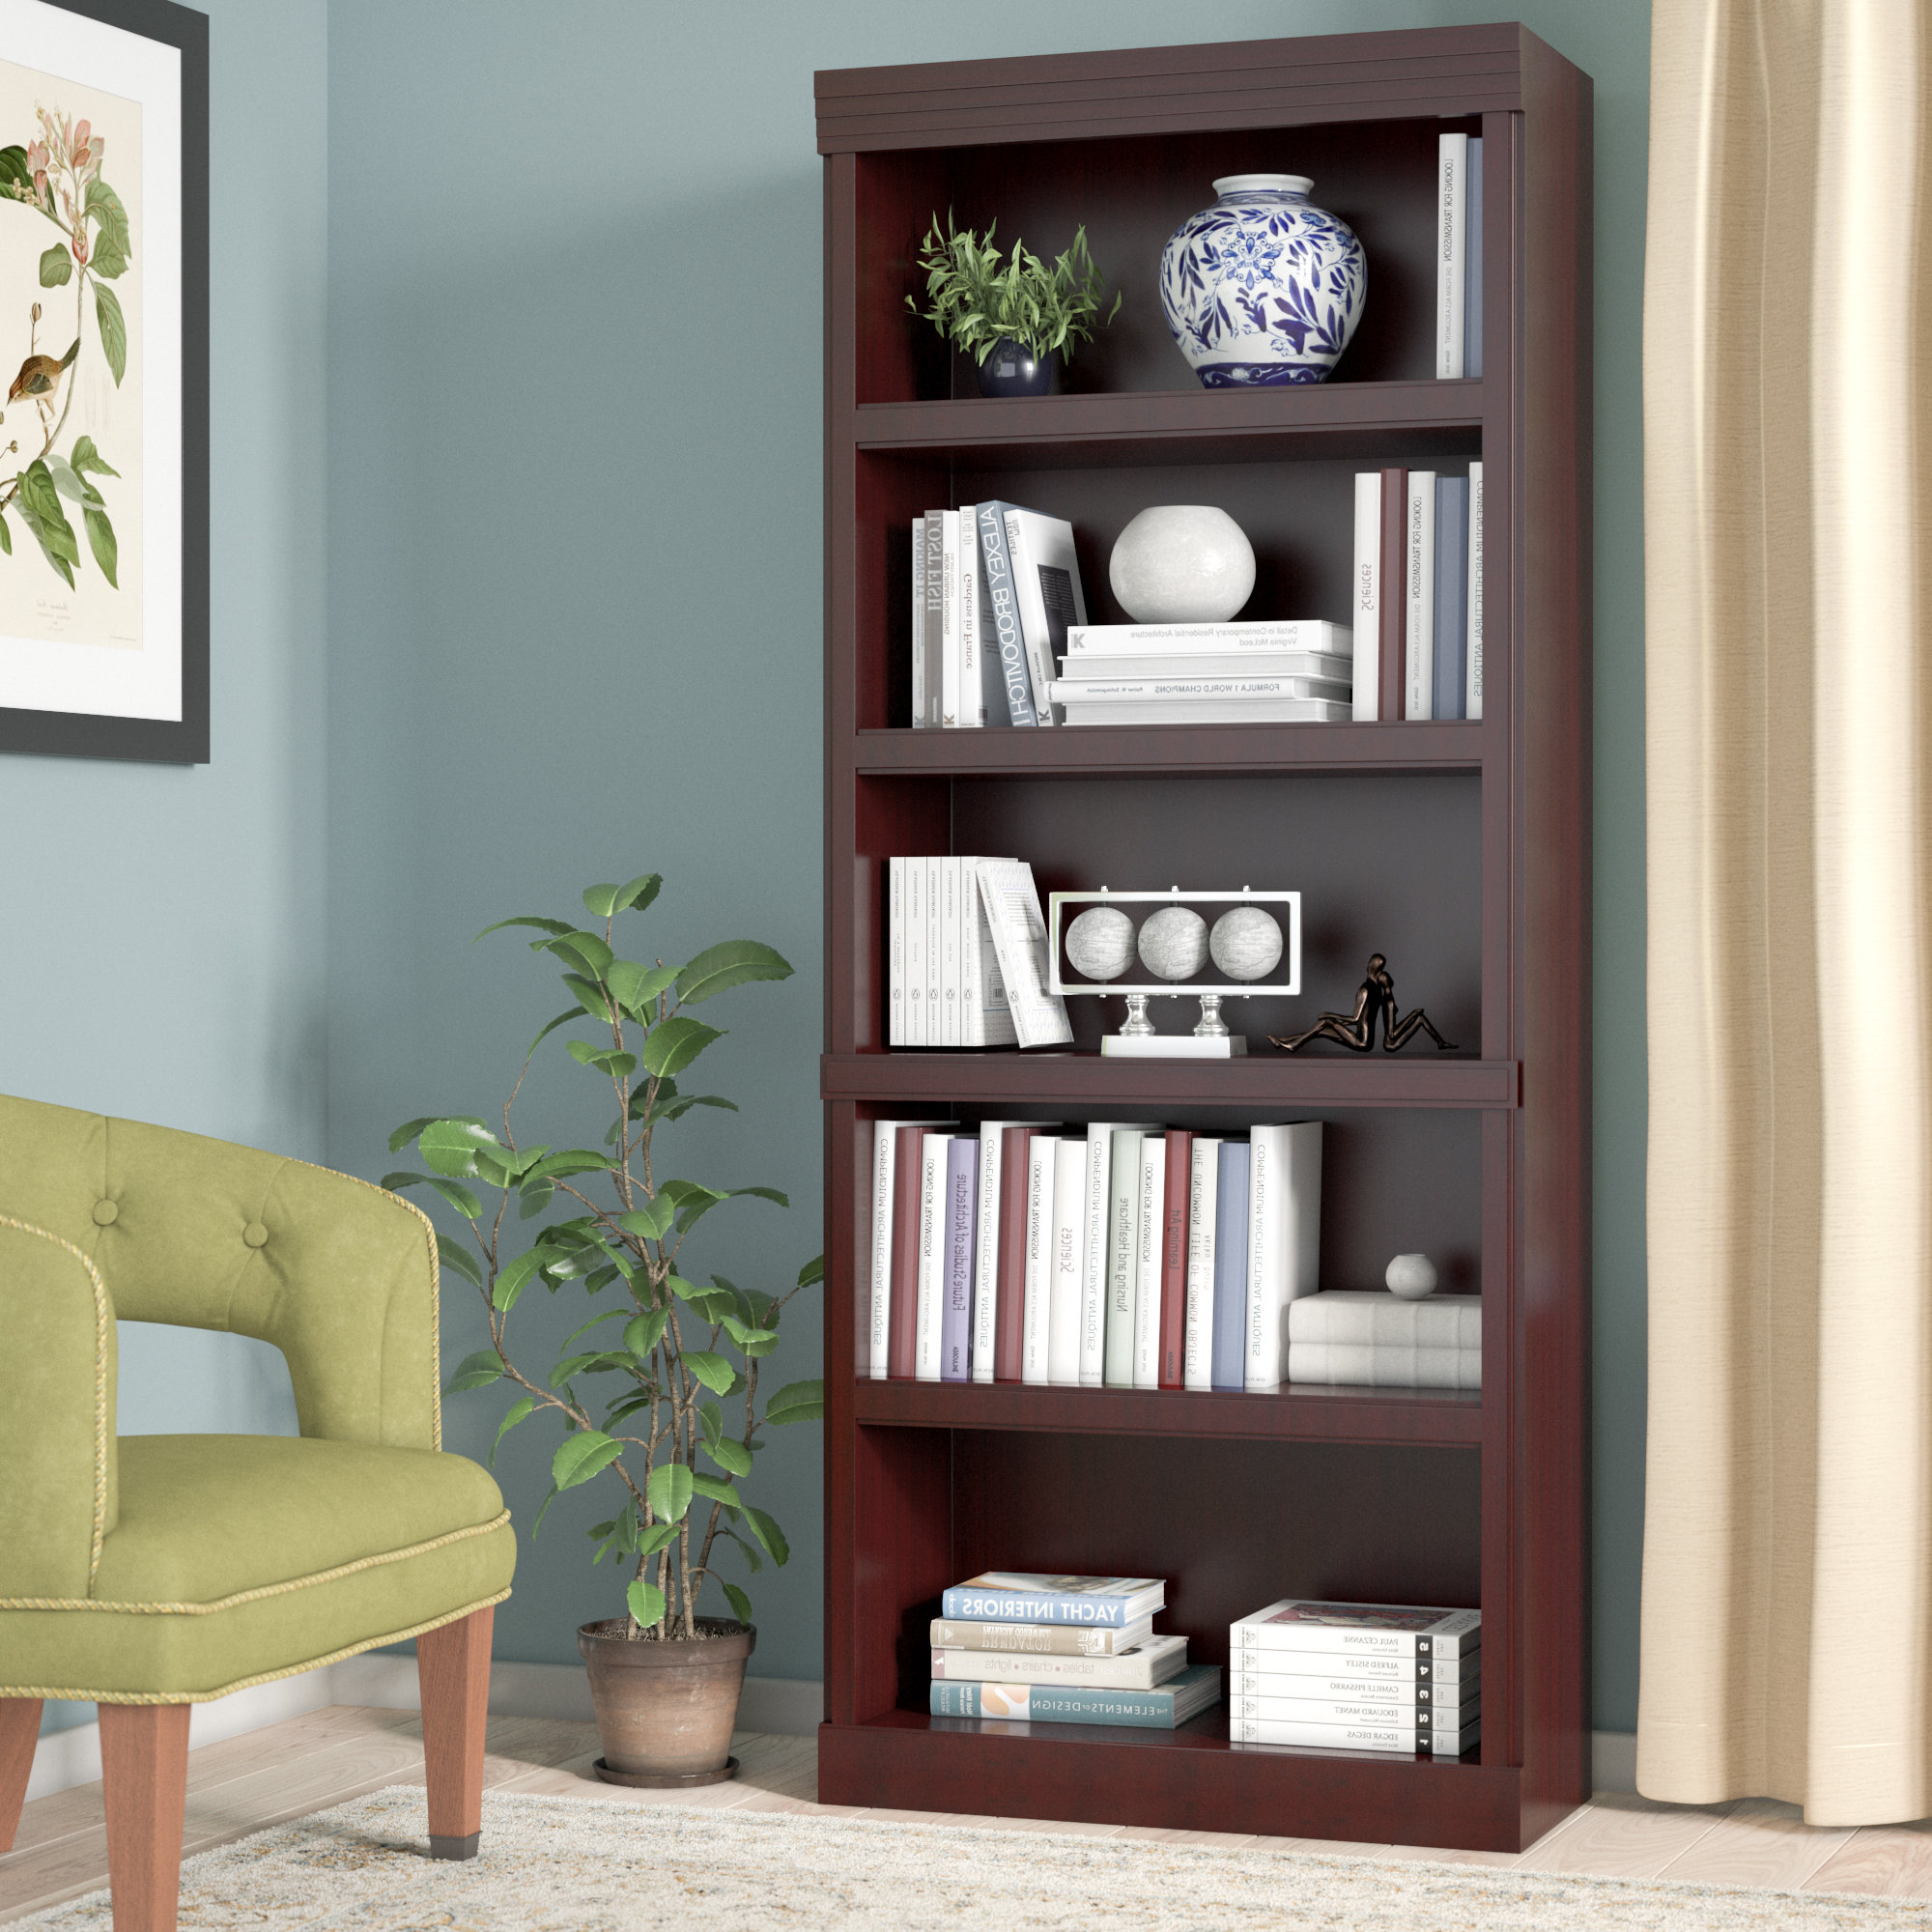 Most Popular Bookcases Sale You'll Love In  (View 6 of 20)